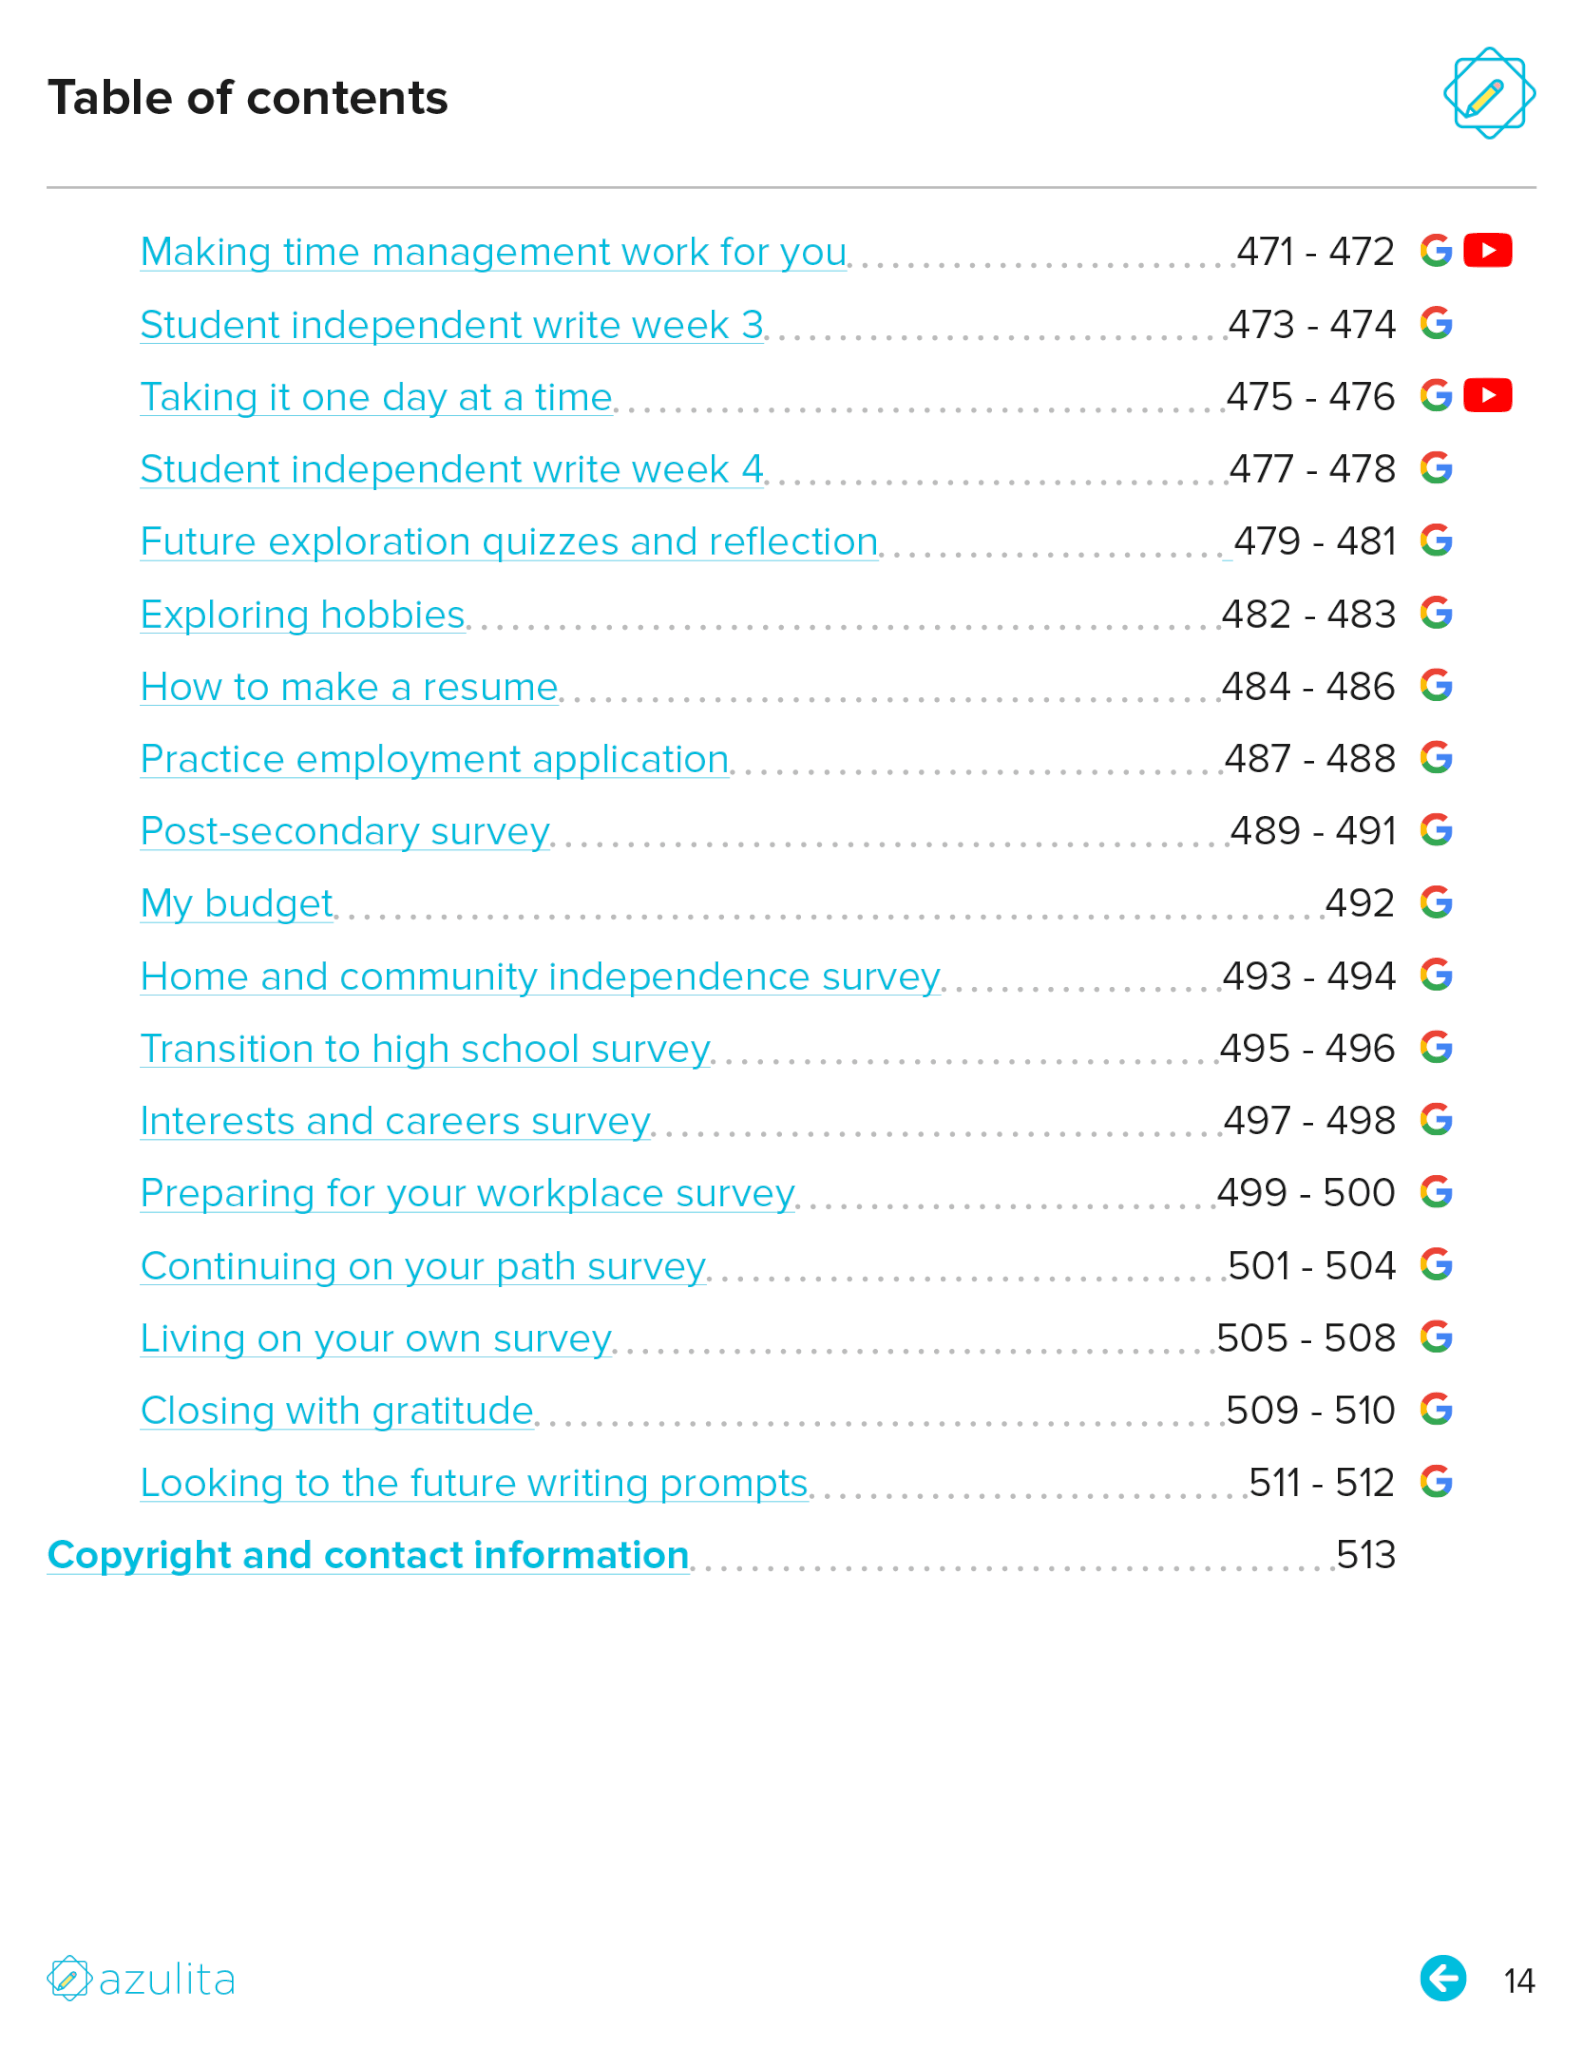 Table of contents page 14